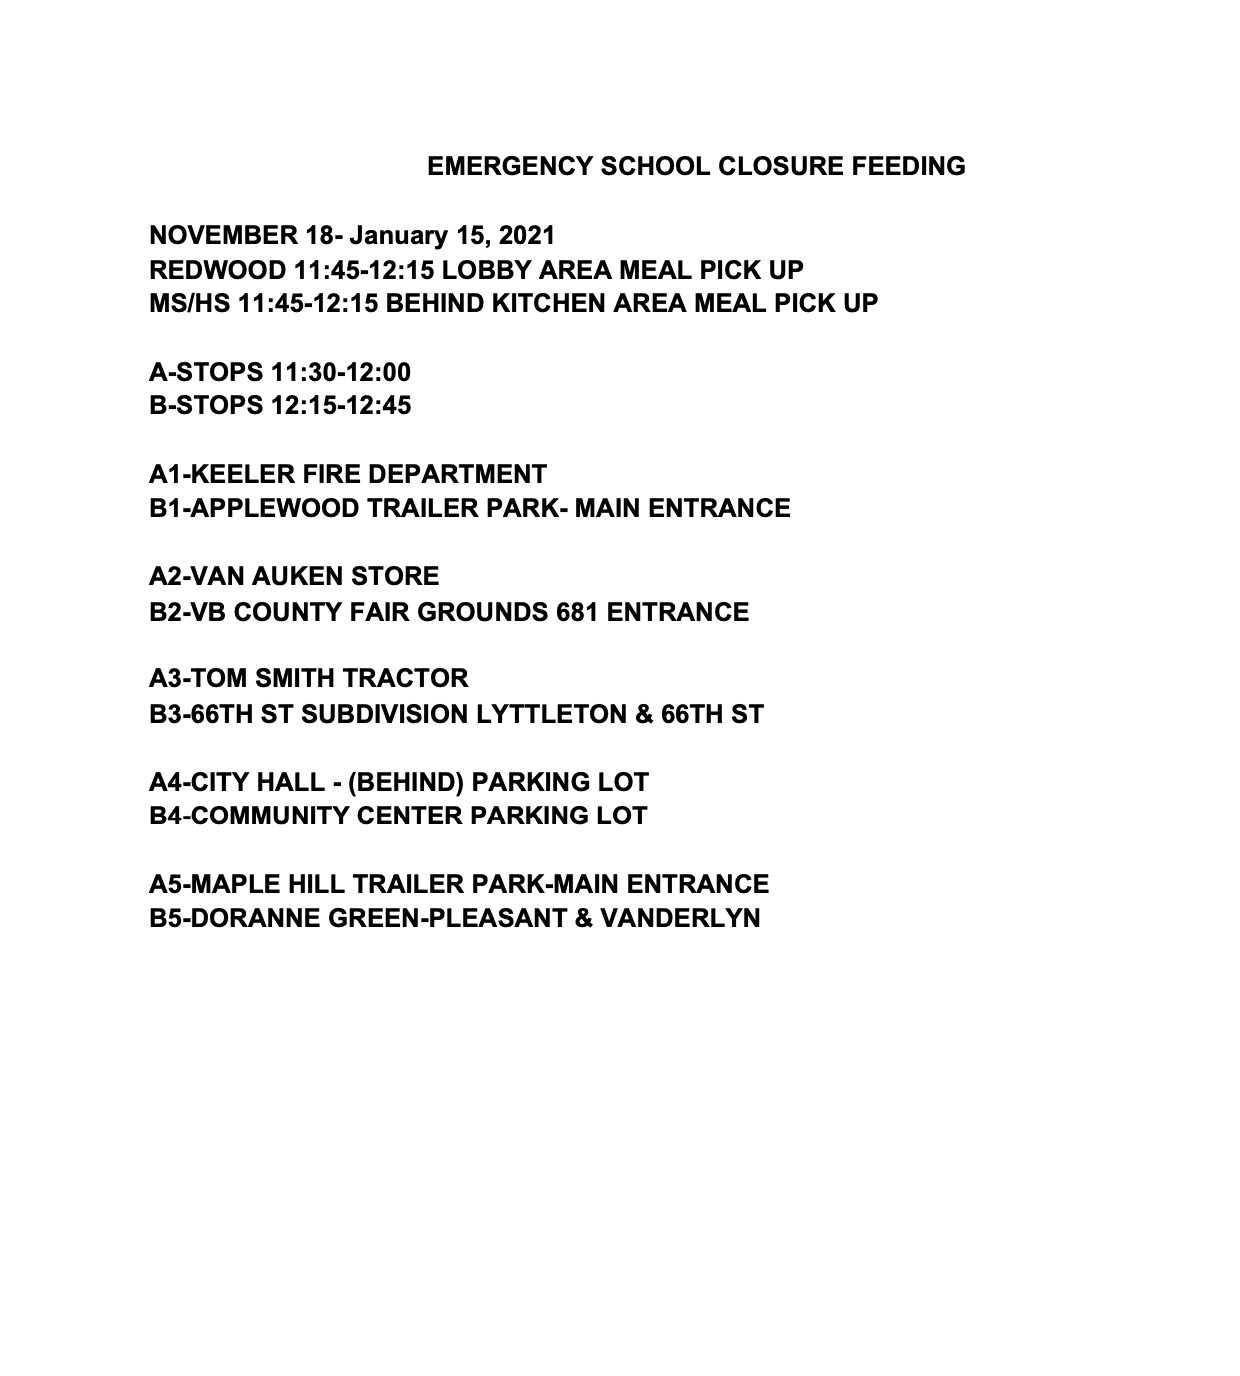 EMERGENCY SCHOOL CLOSURE FEEDING Image